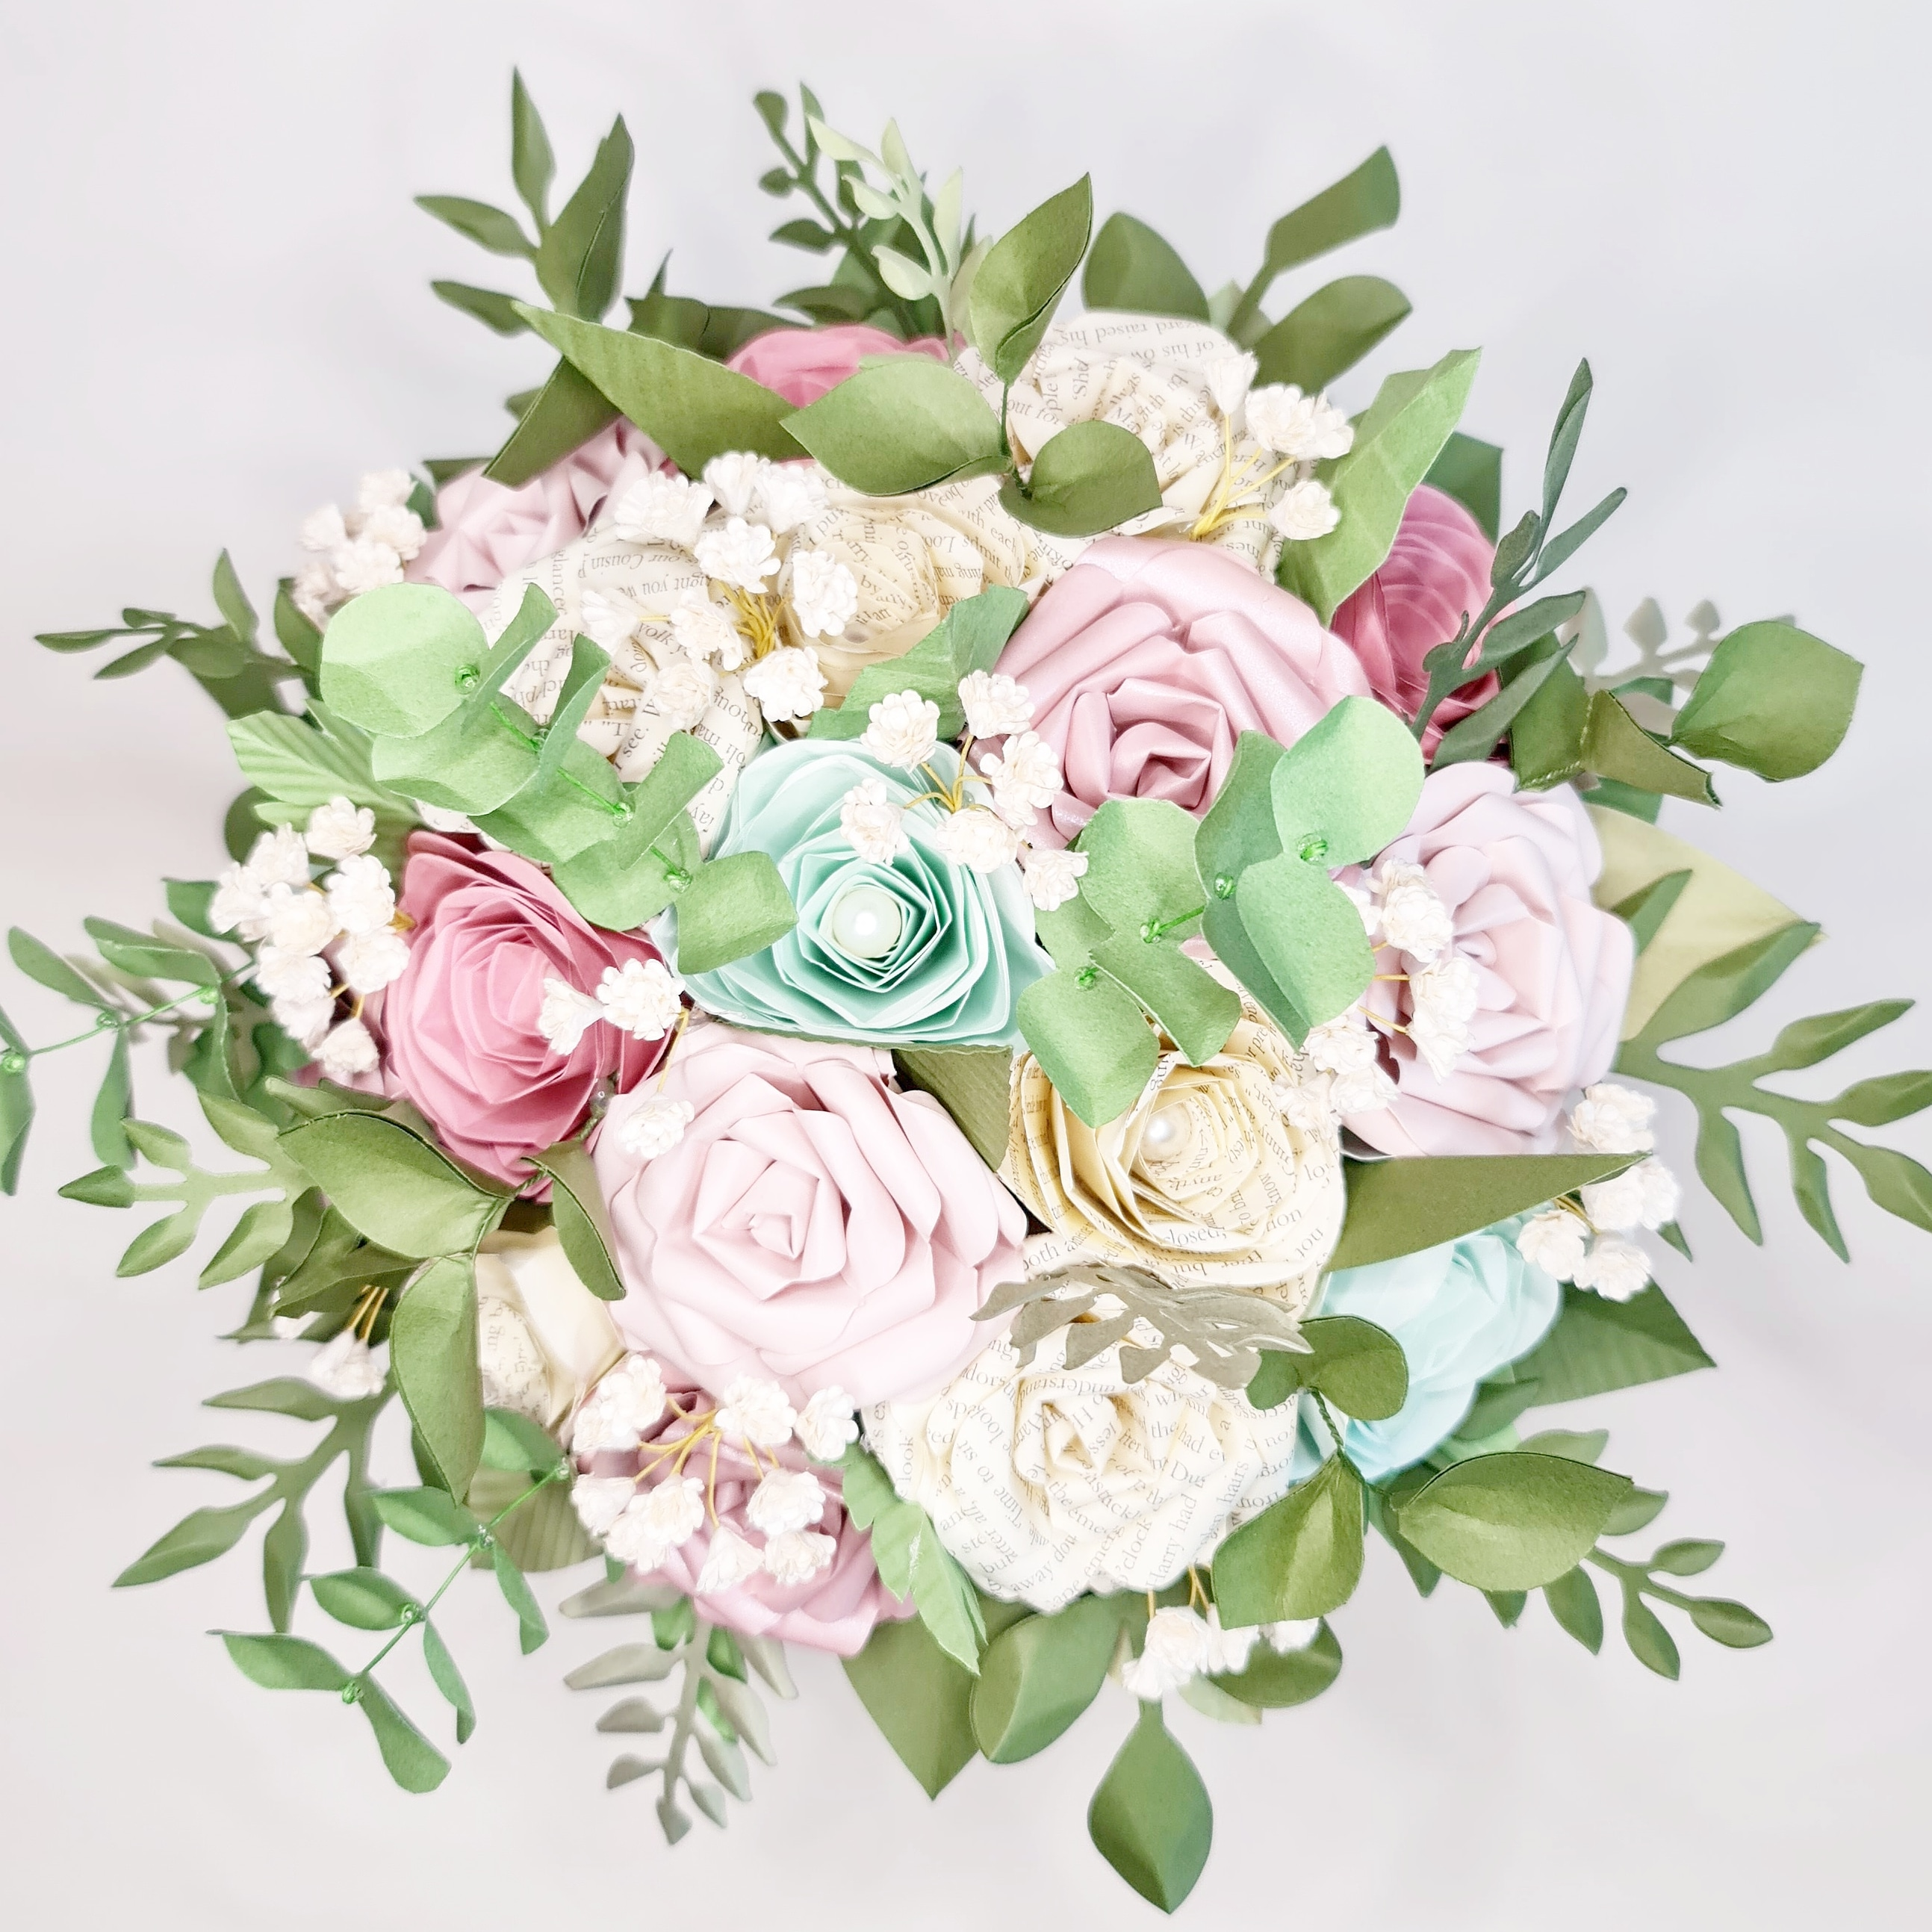 Spring Bouquet bridal wedding paper flowers